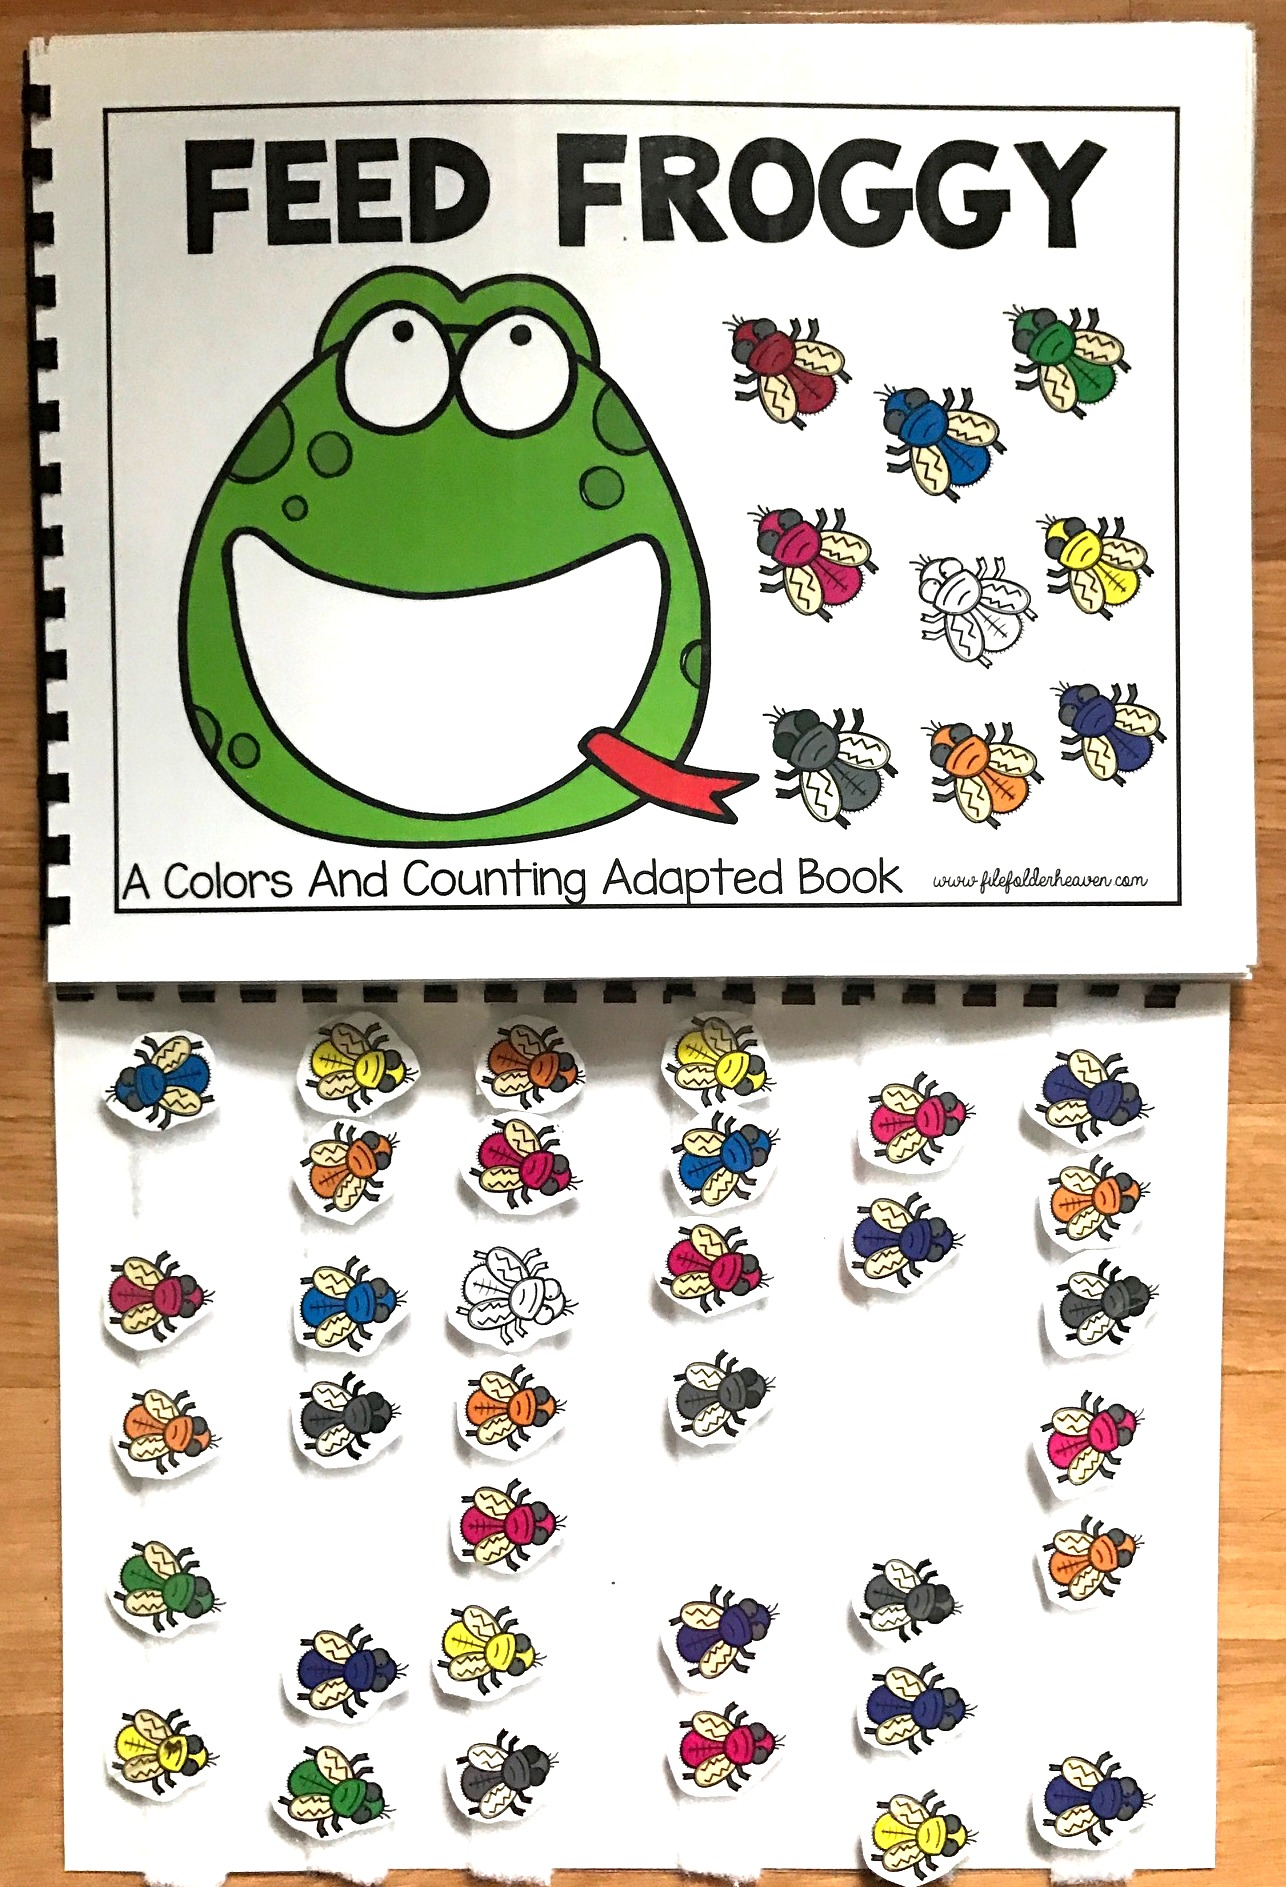 Feed Froggy: A Colors and Counting Adapted Book